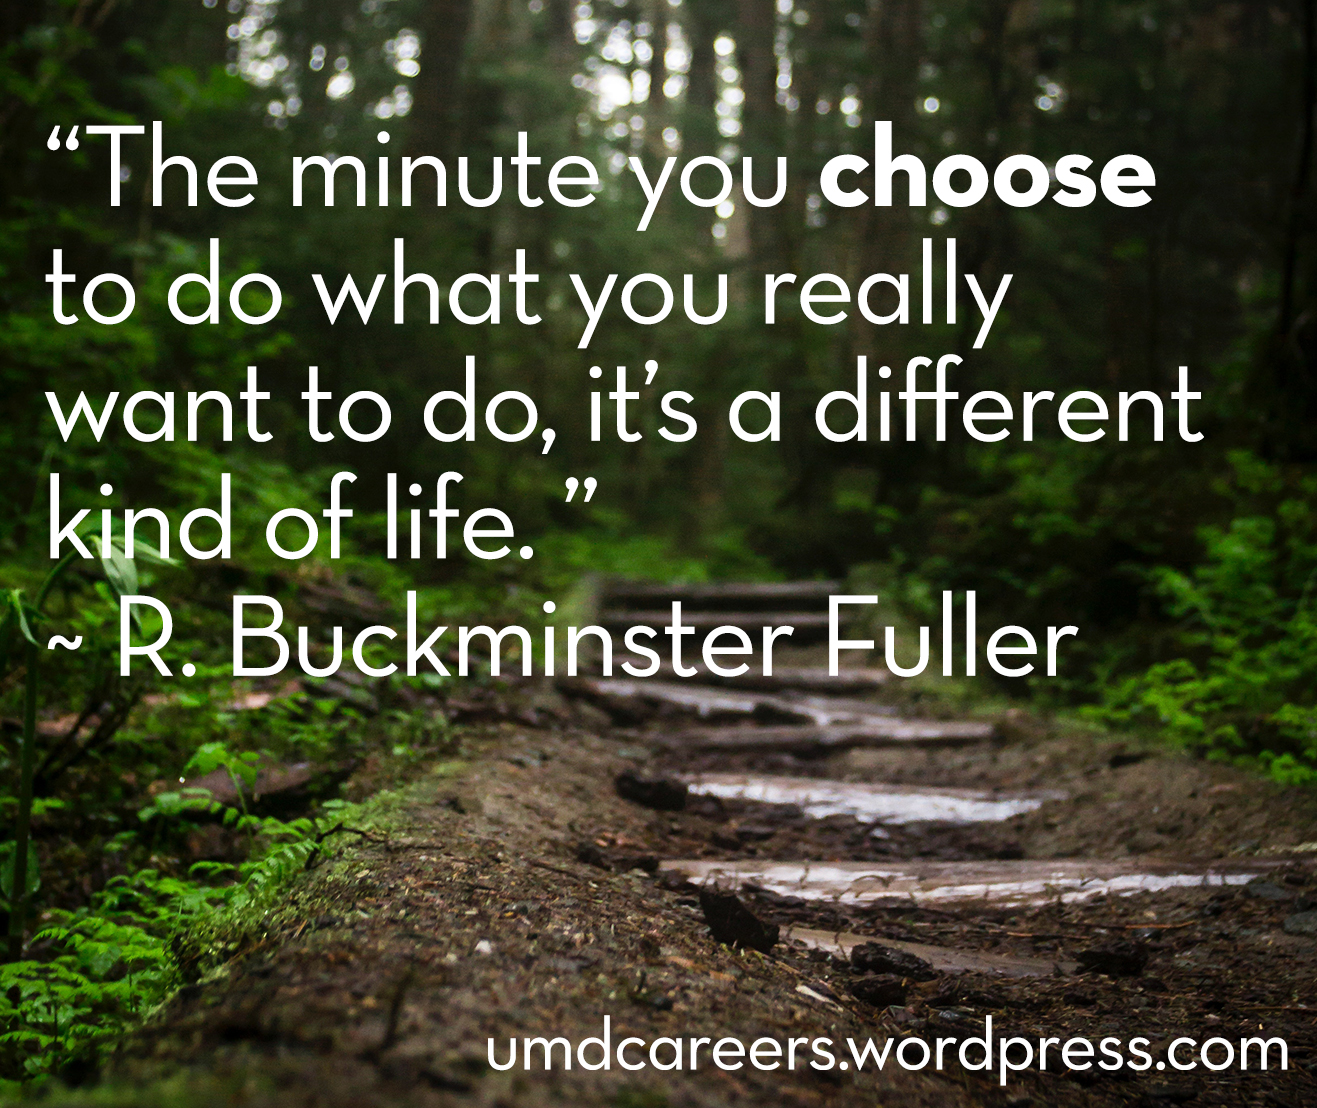 The minute you choose to do what you really want to do, it's a different kind of life. - R. Buckminster Fuller